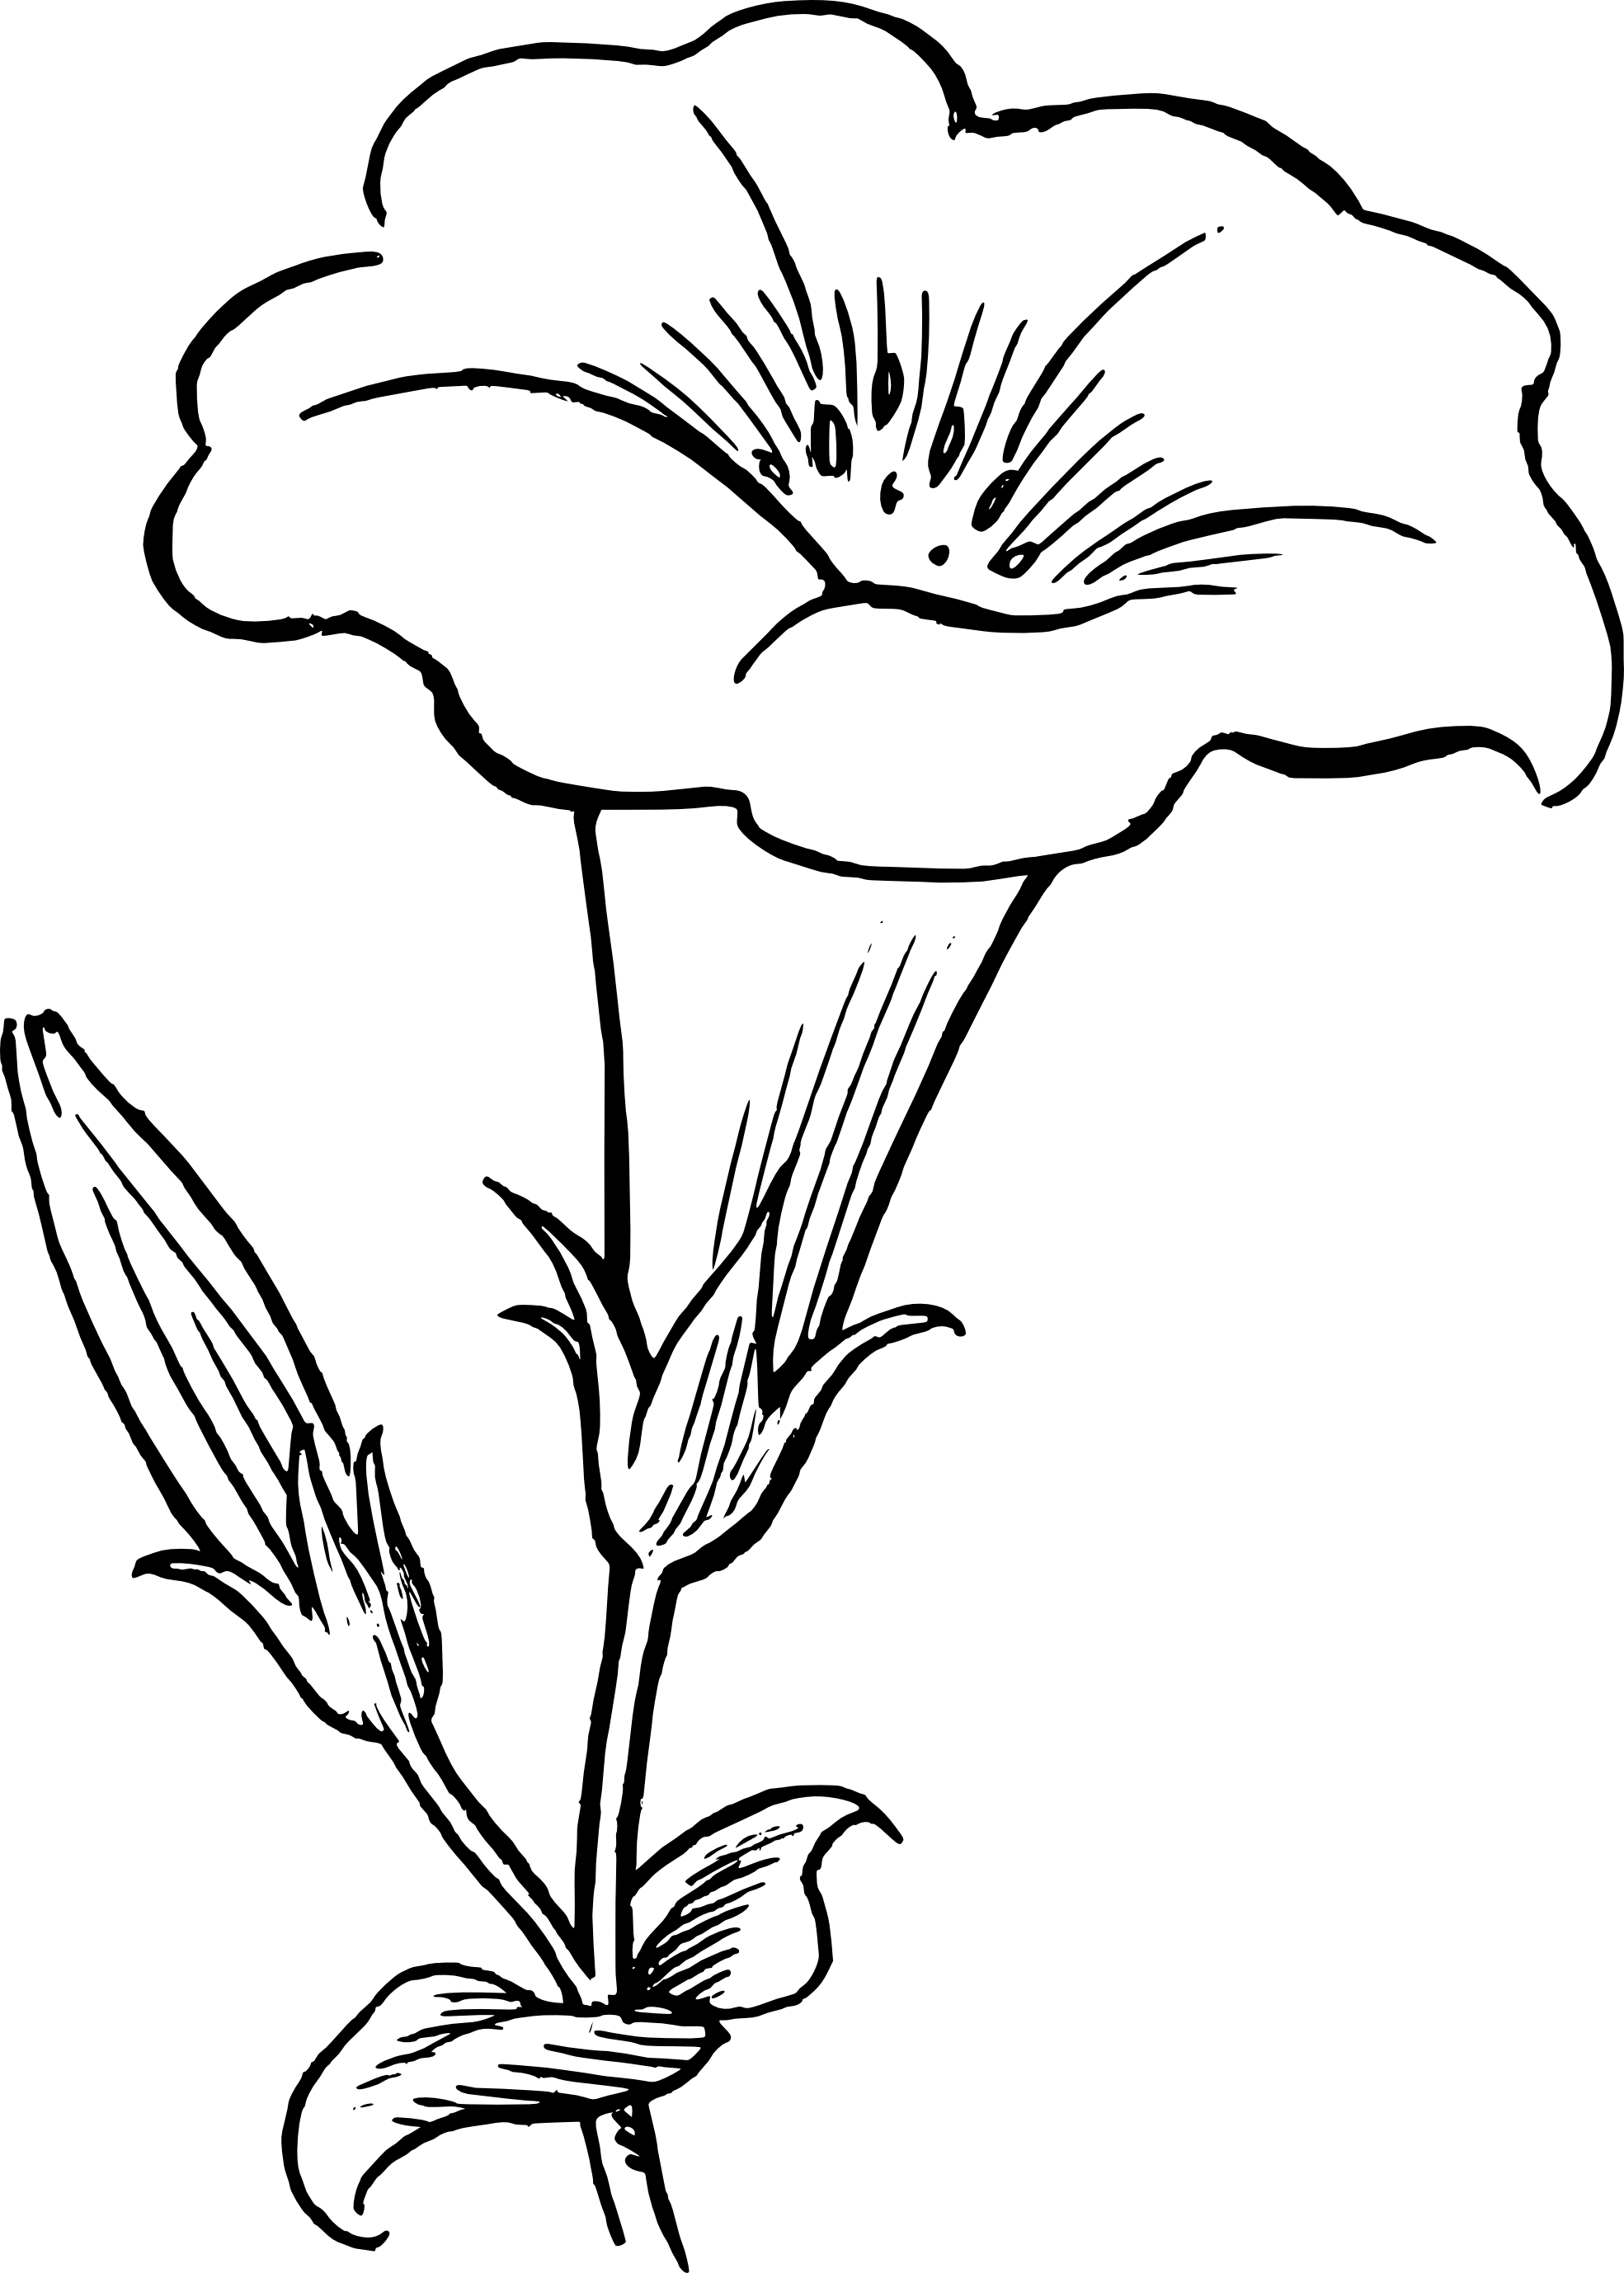 black and white flower drawing clipart panda free clipart